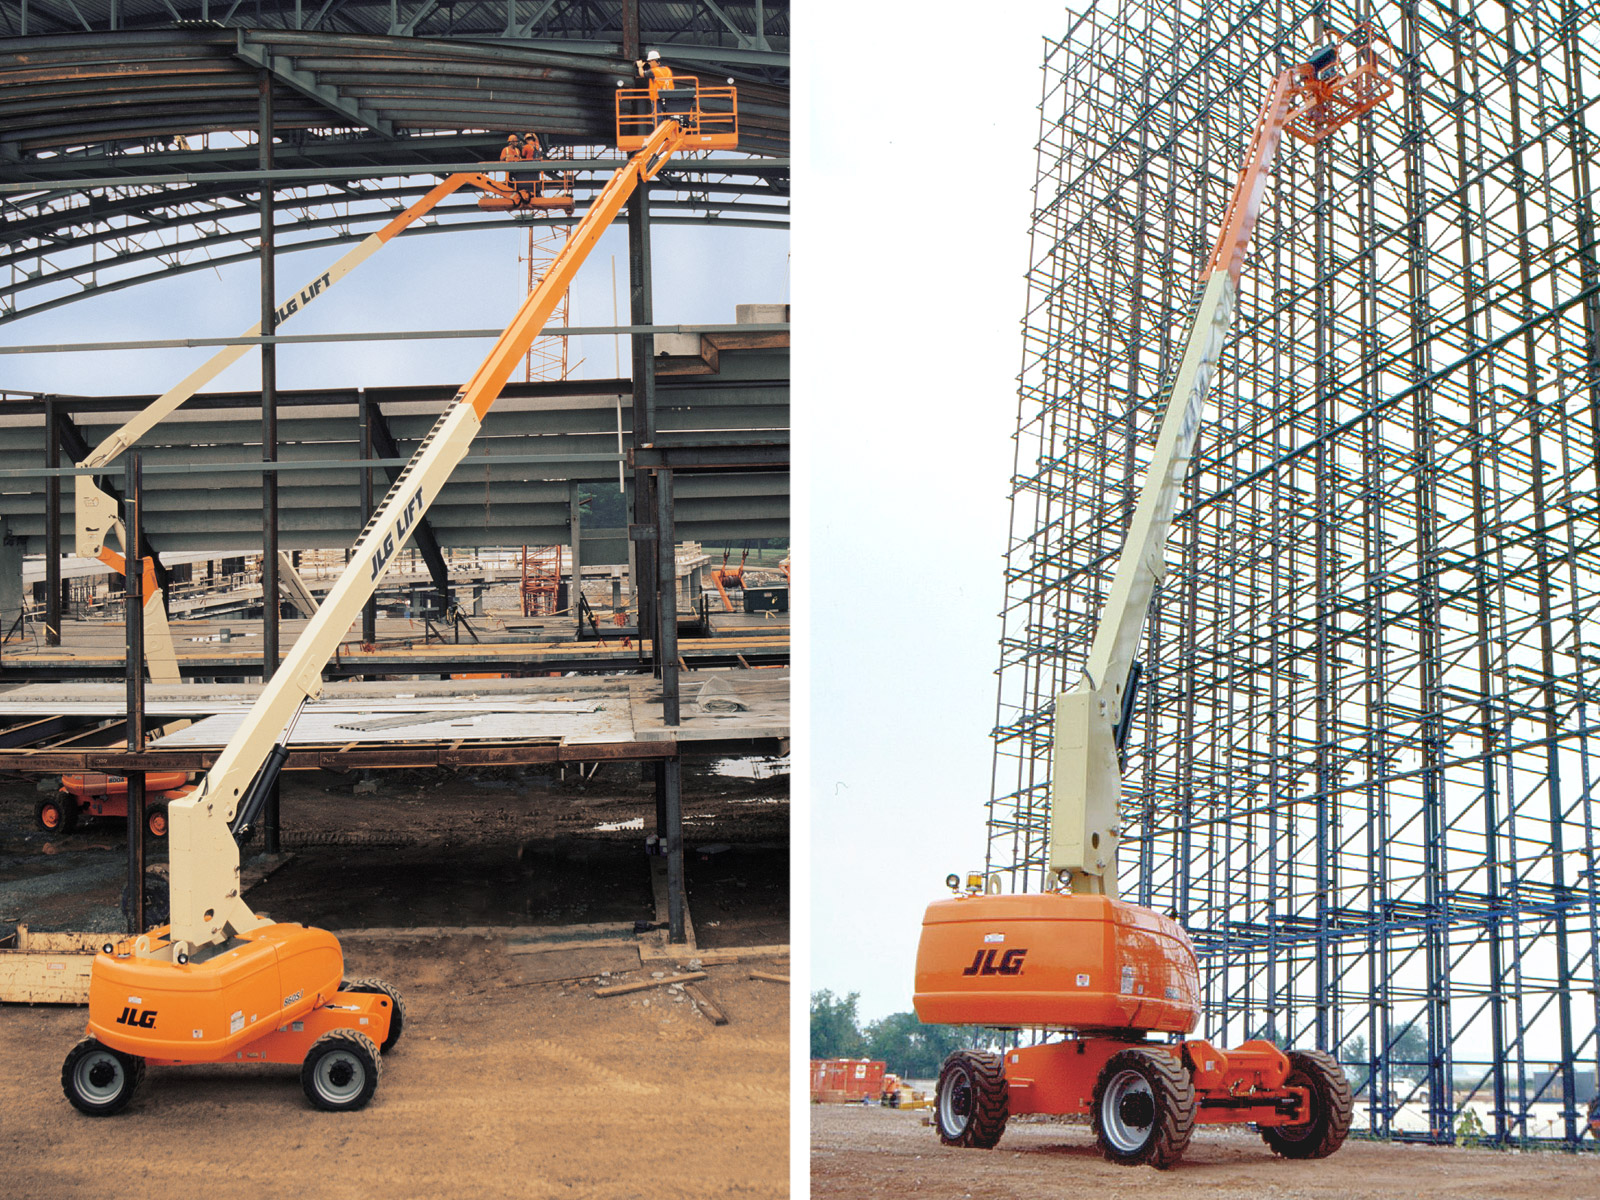 860sj extended?w=100 860sj telescopic boom lift jlg  at crackthecode.co